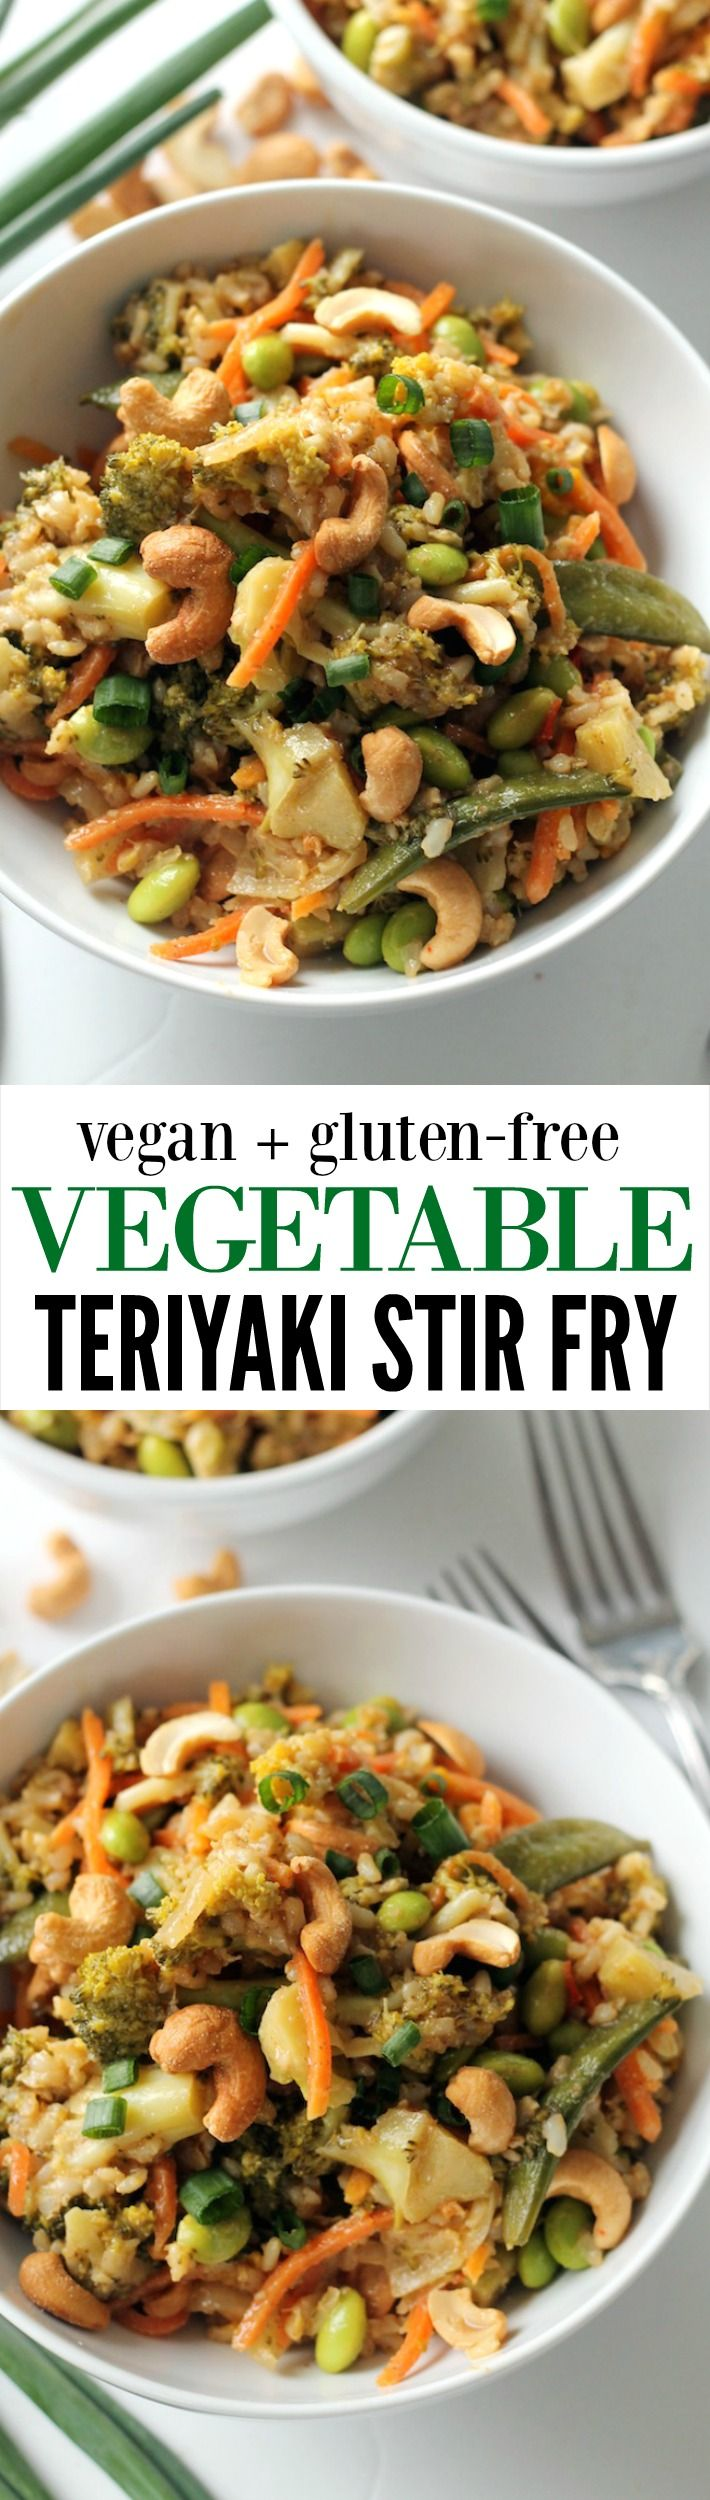 Easy Vegetable Teriyaki Stir Fry | Hummusapien